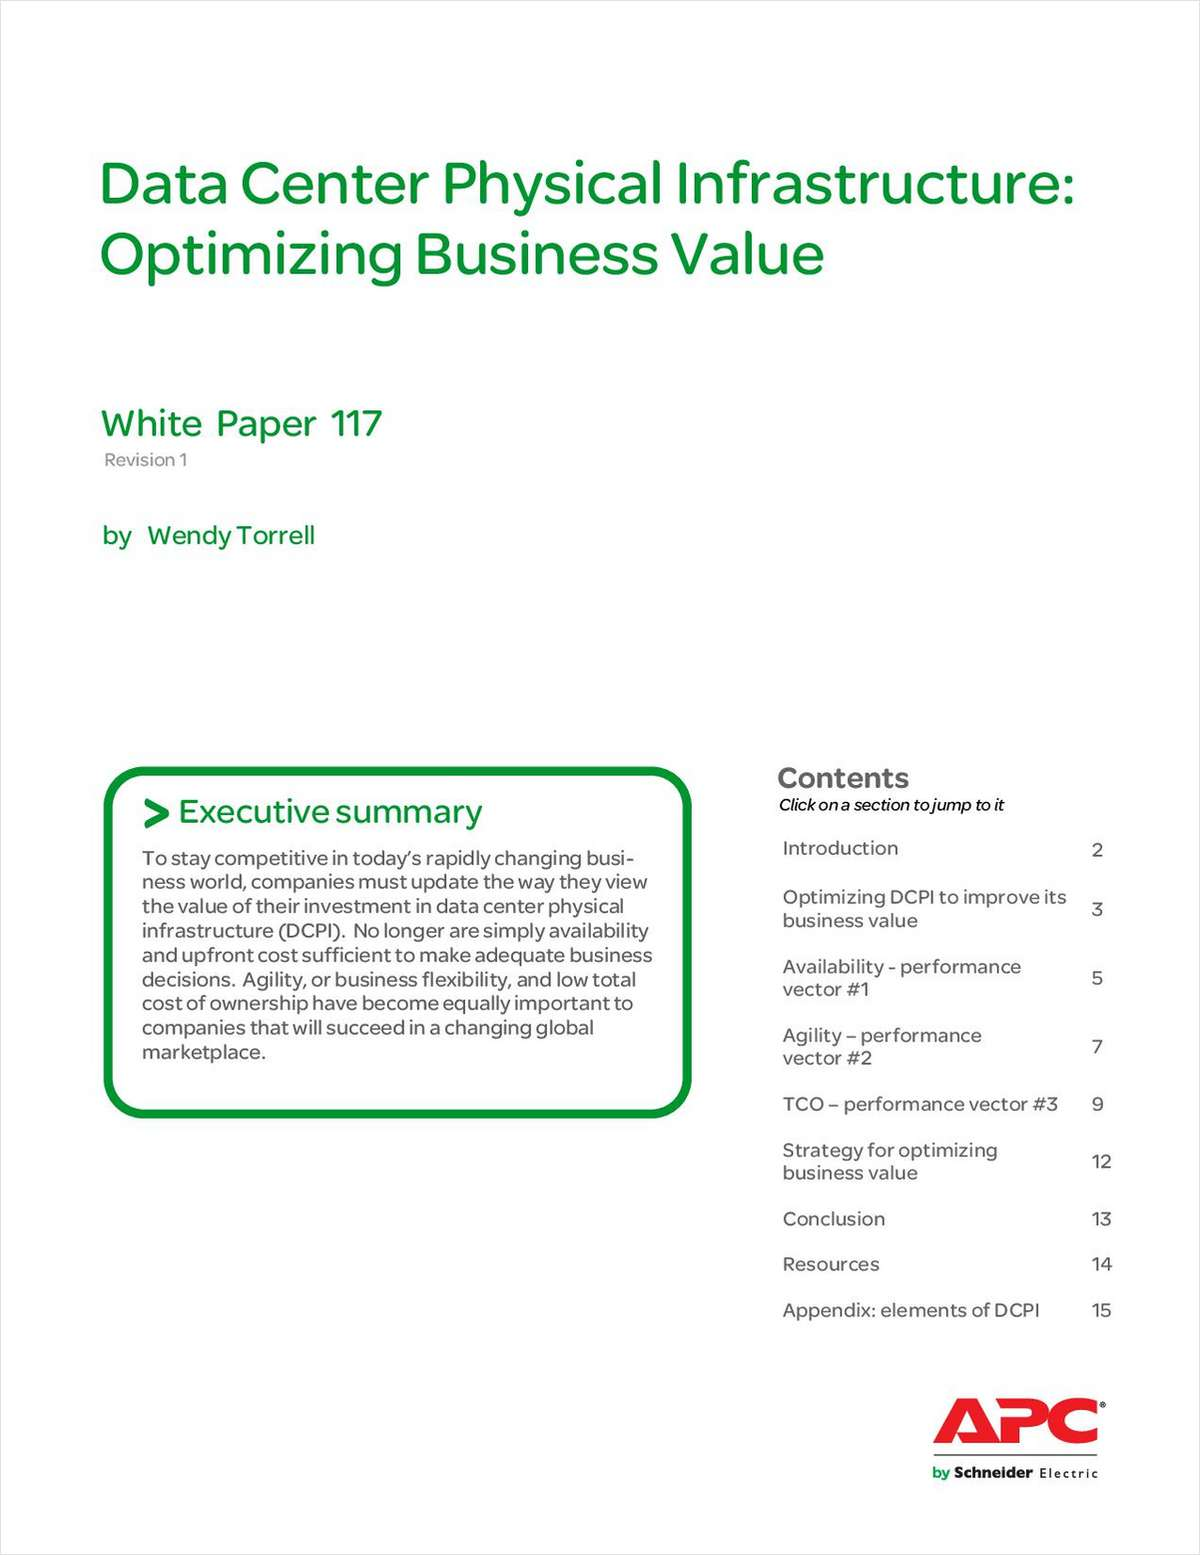 Data Center Physical Infrastructure: Optimizing Business Value